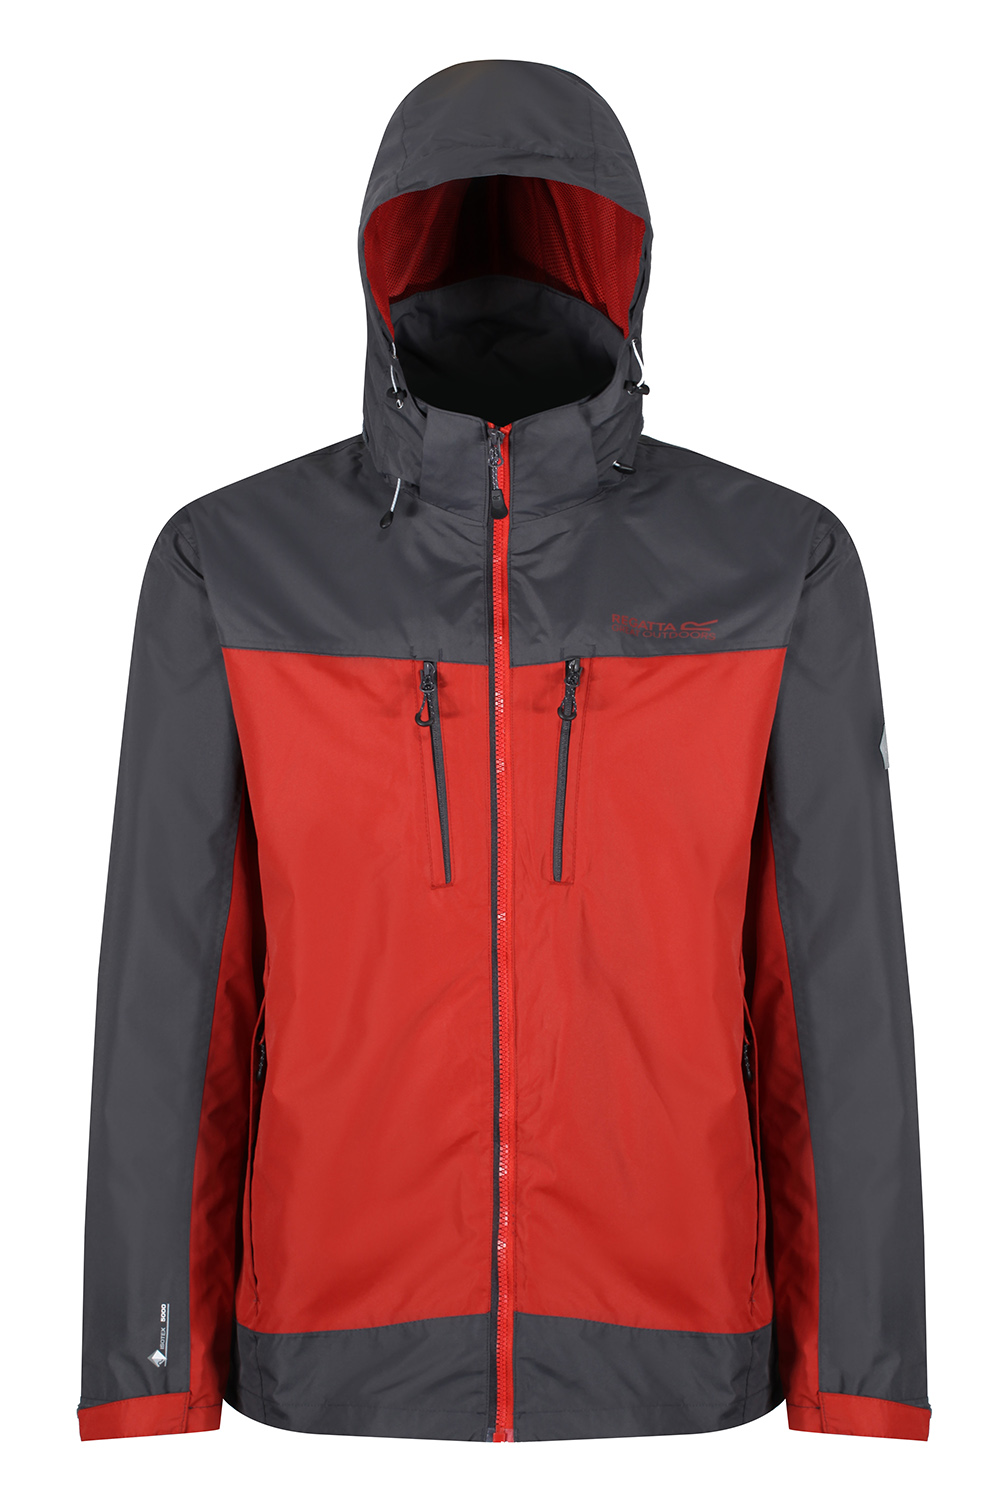 Regatta-Mens-Calderdale-II-Jacket-Waterproof-Breathable-Isotex-5000-Hooded-Coat thumbnail 19